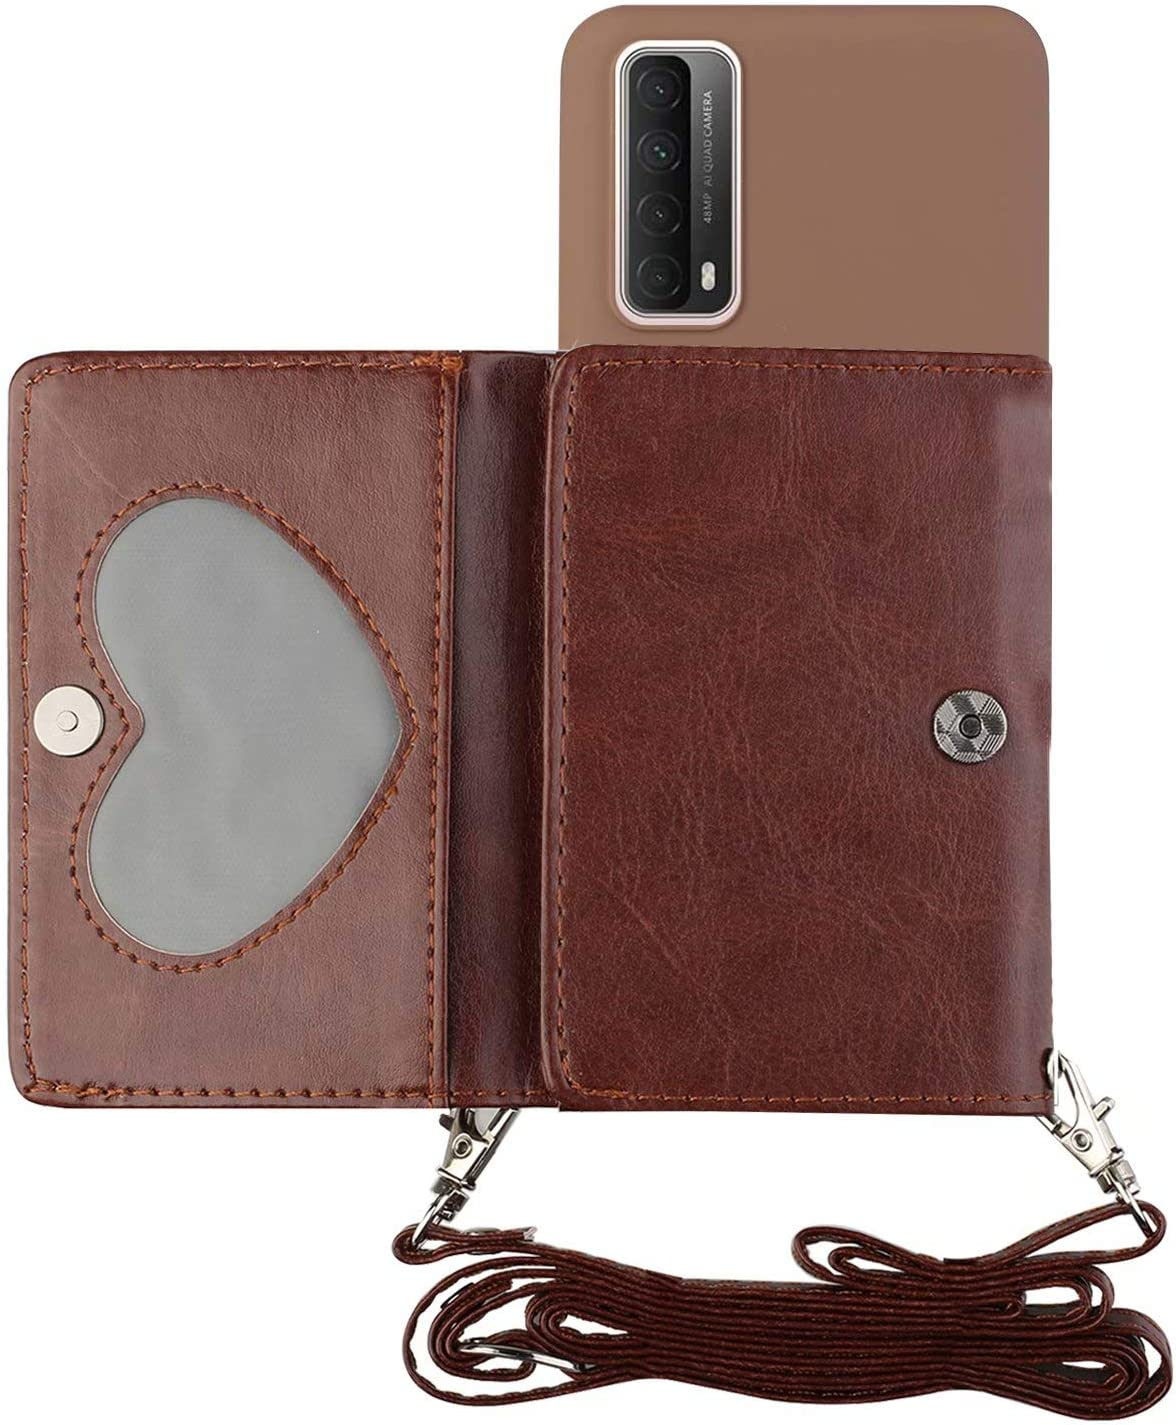 Miagon Shoulder Strap Crossbody Case for Huawei P Smart 2021,Necklace Lanyard Wallet PU Leather Card Holder Stand Cover with Silicone Back,Brown